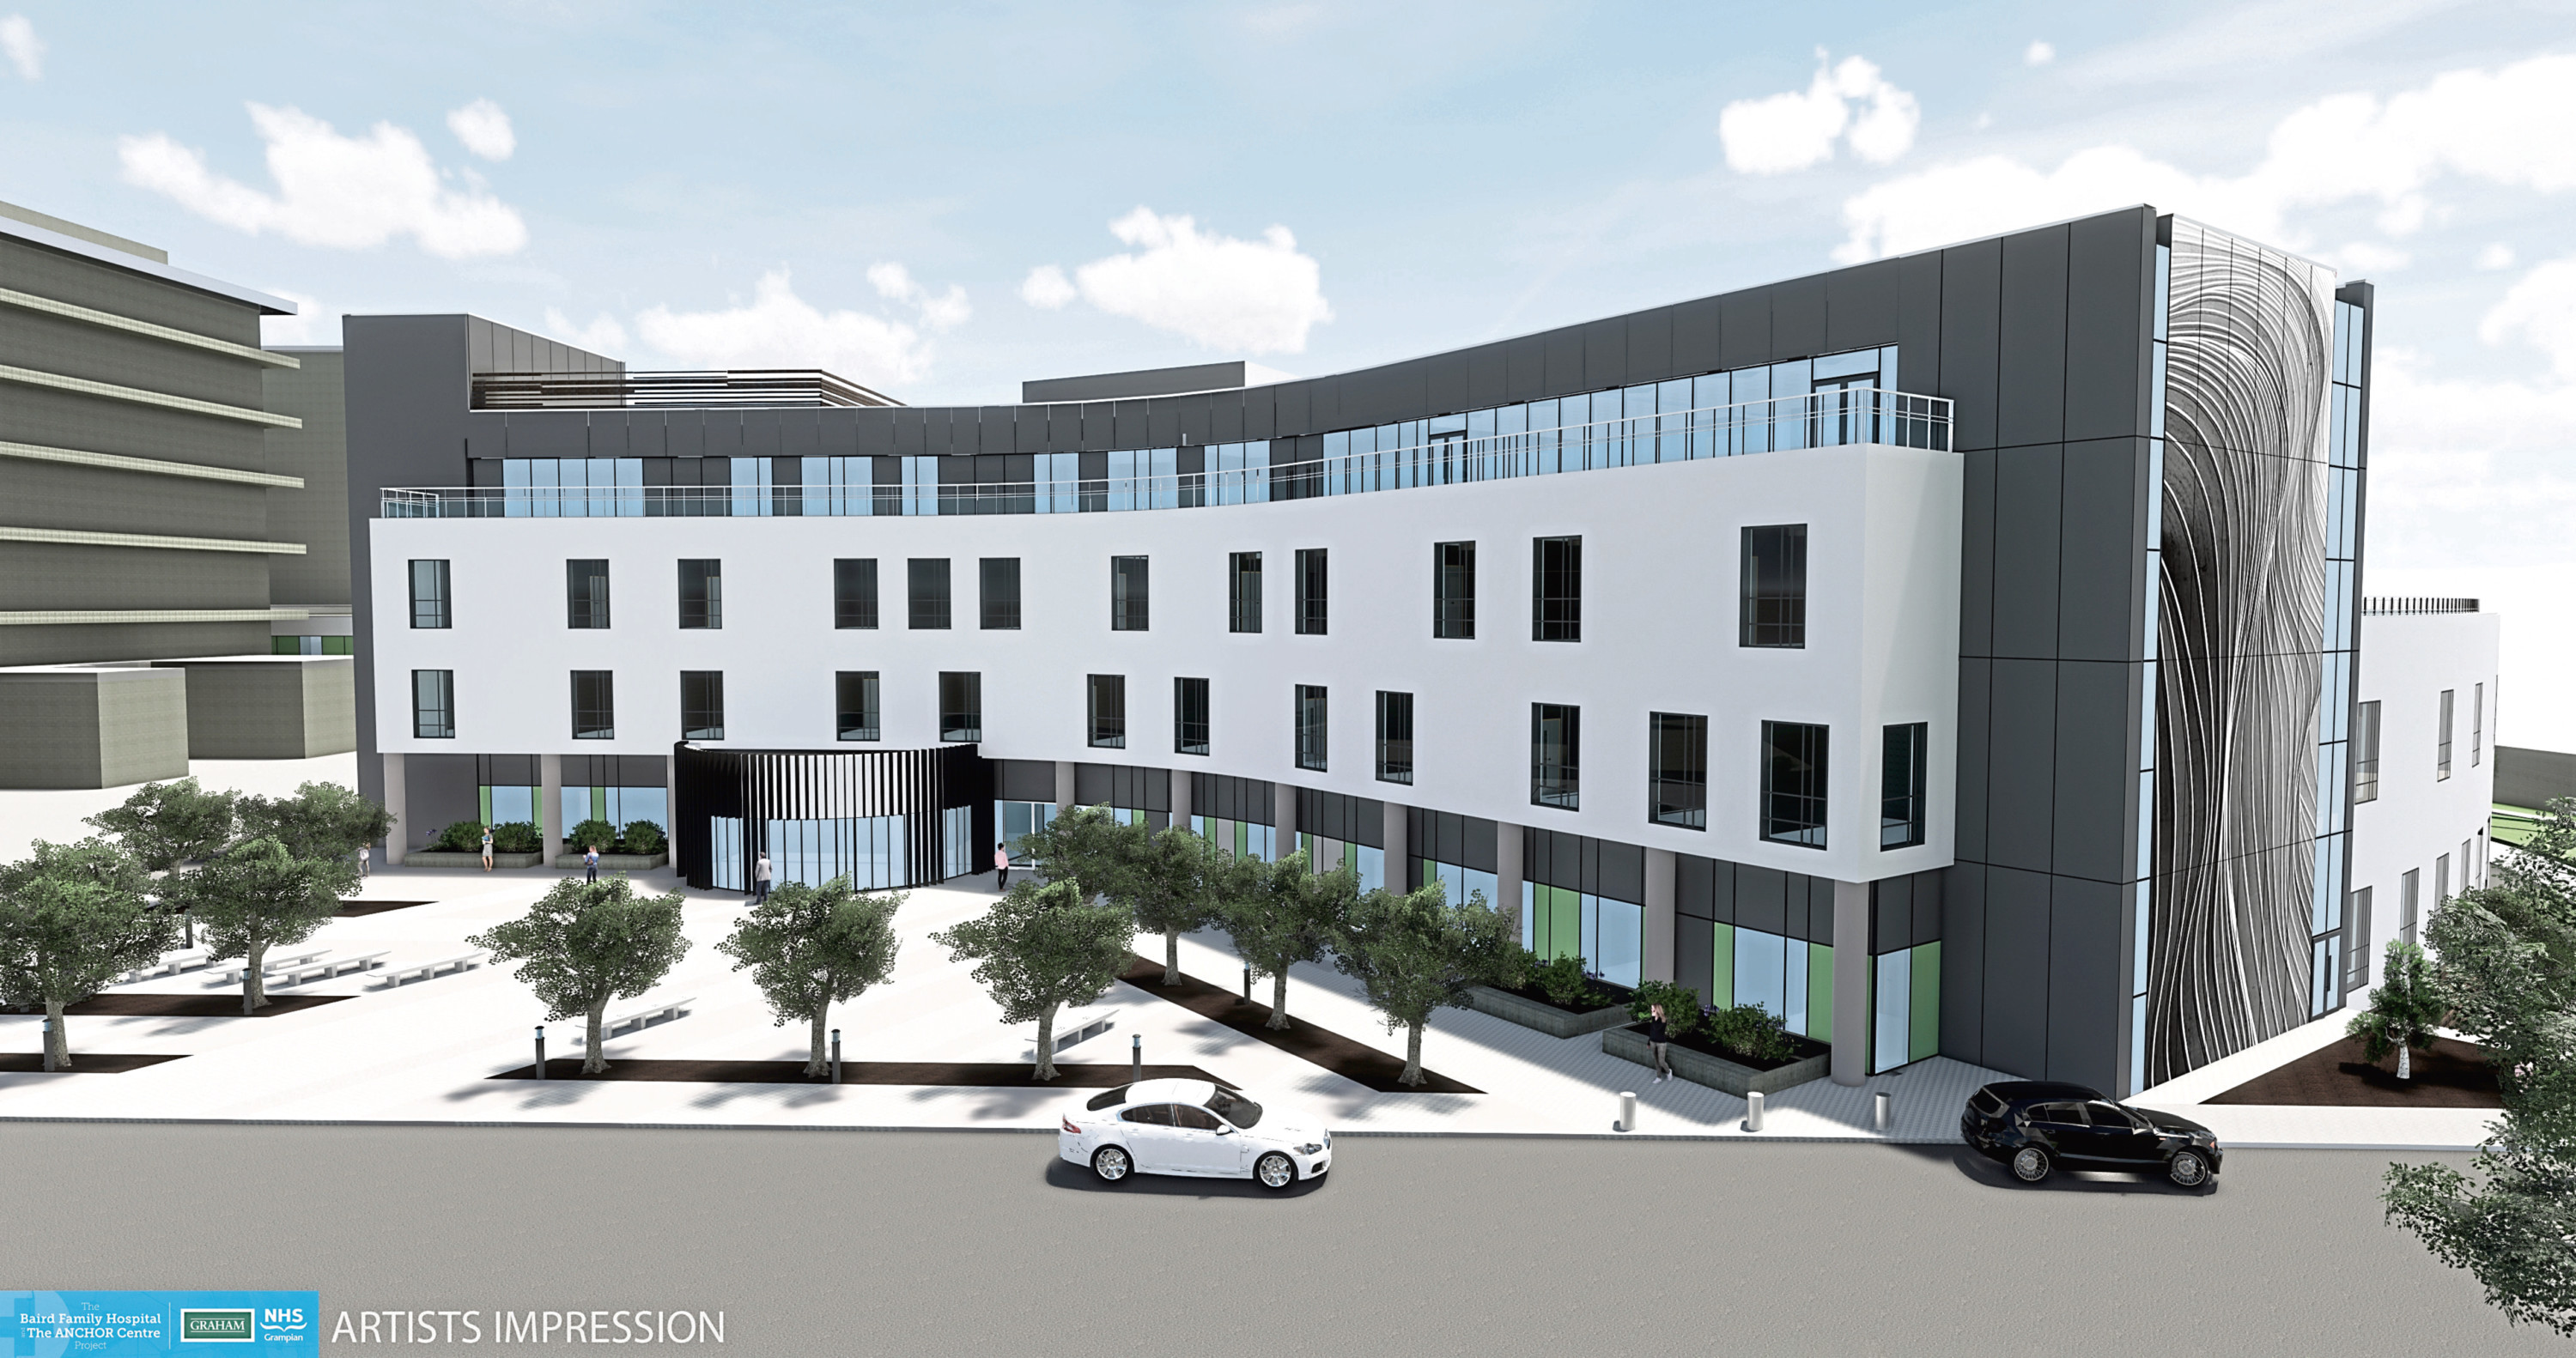 An artist's impression of the new Baird Family Hospital